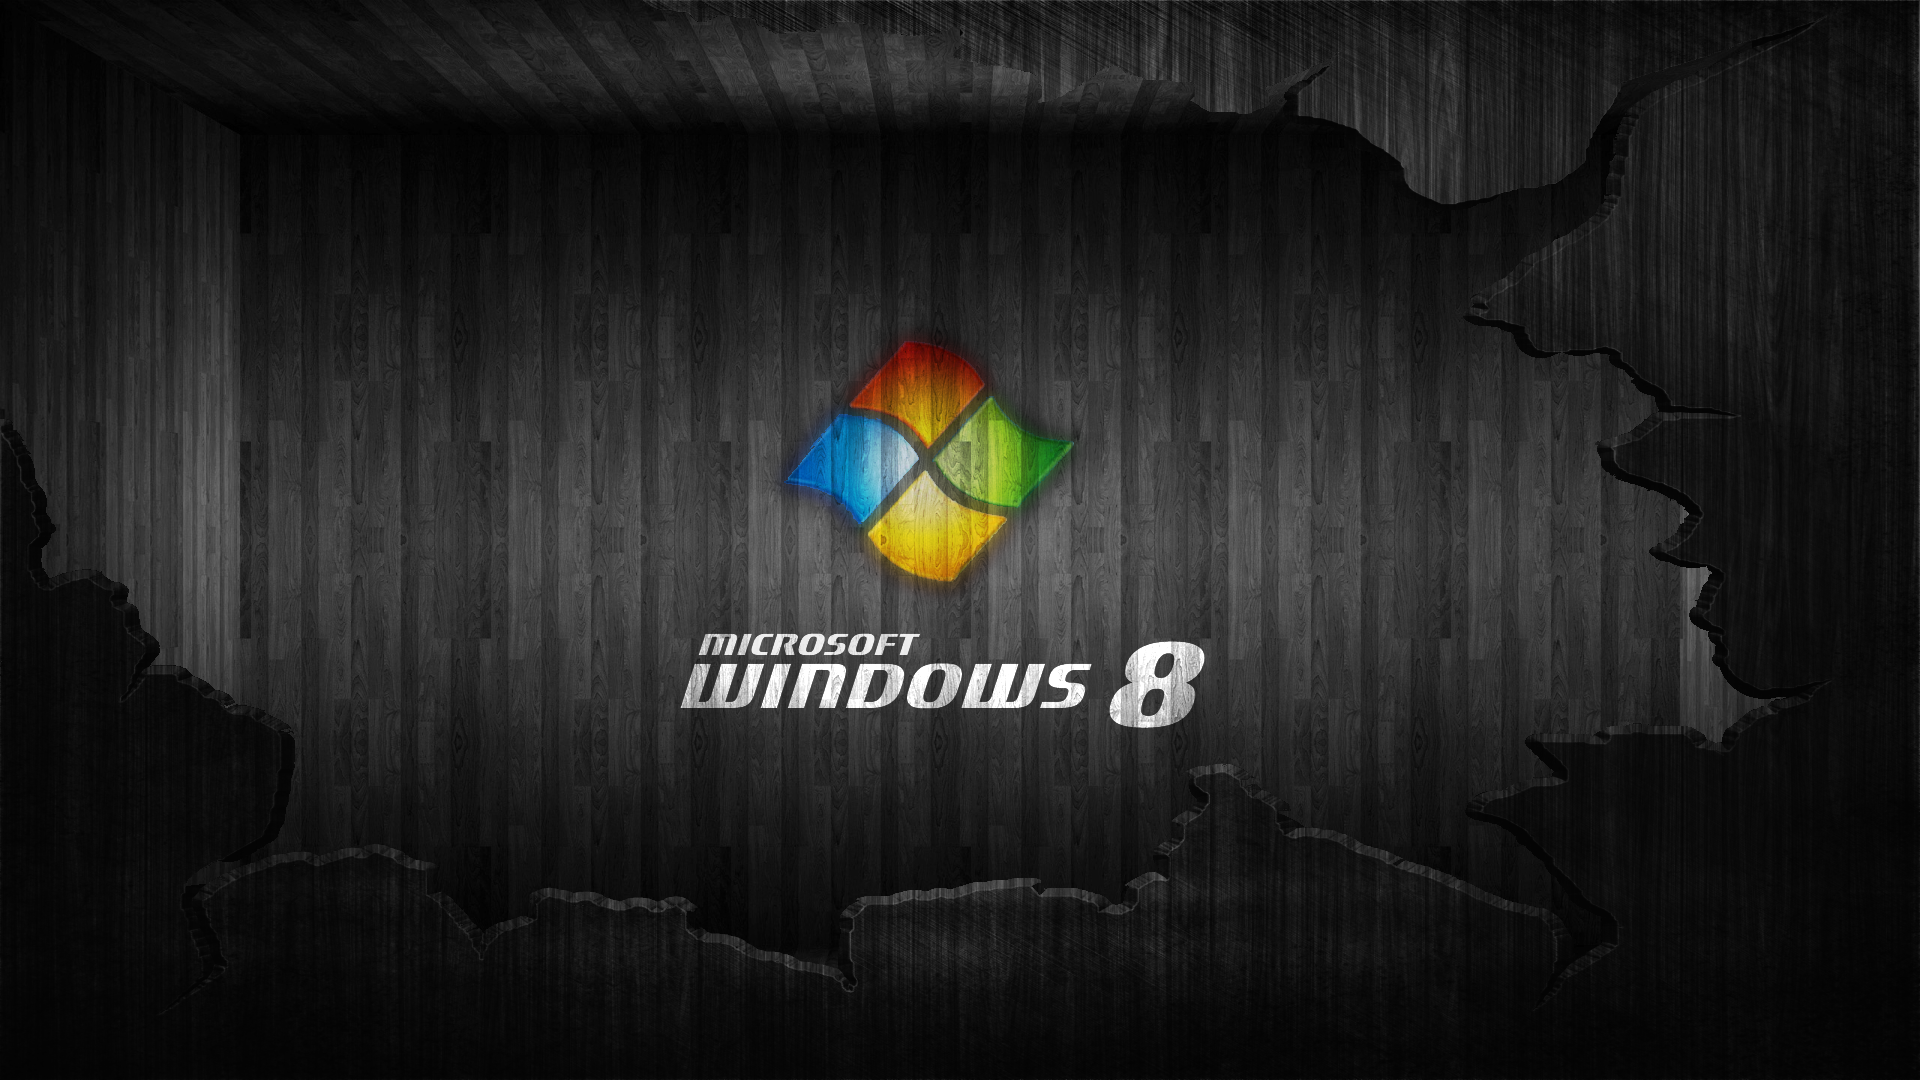 Windows 8 1080p Exclusive HD Wallpapers 2025 1920x1080